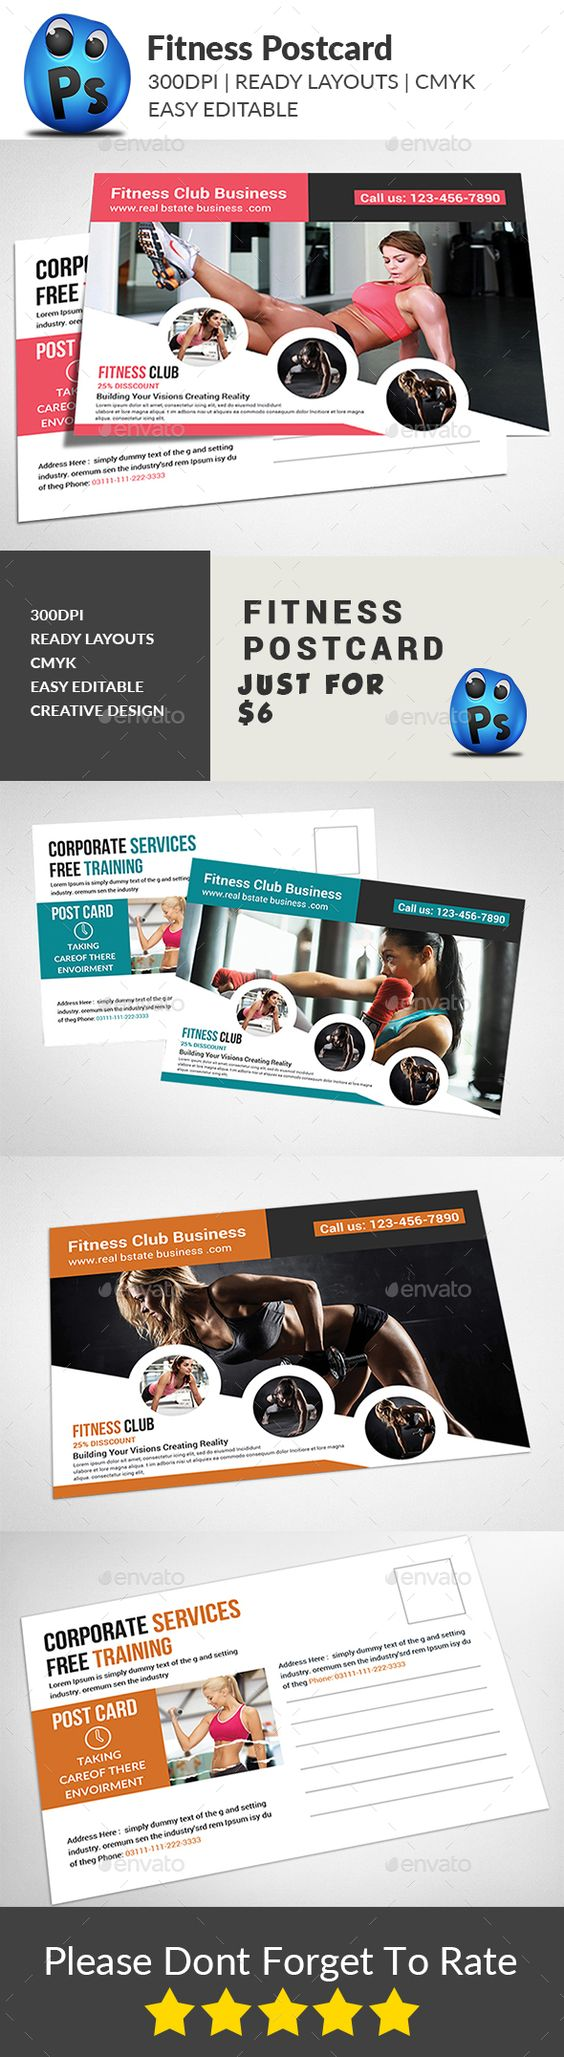 fitness postcard postcards postcard template and fitness fitness postcard psd template advertising pamphlet 10141